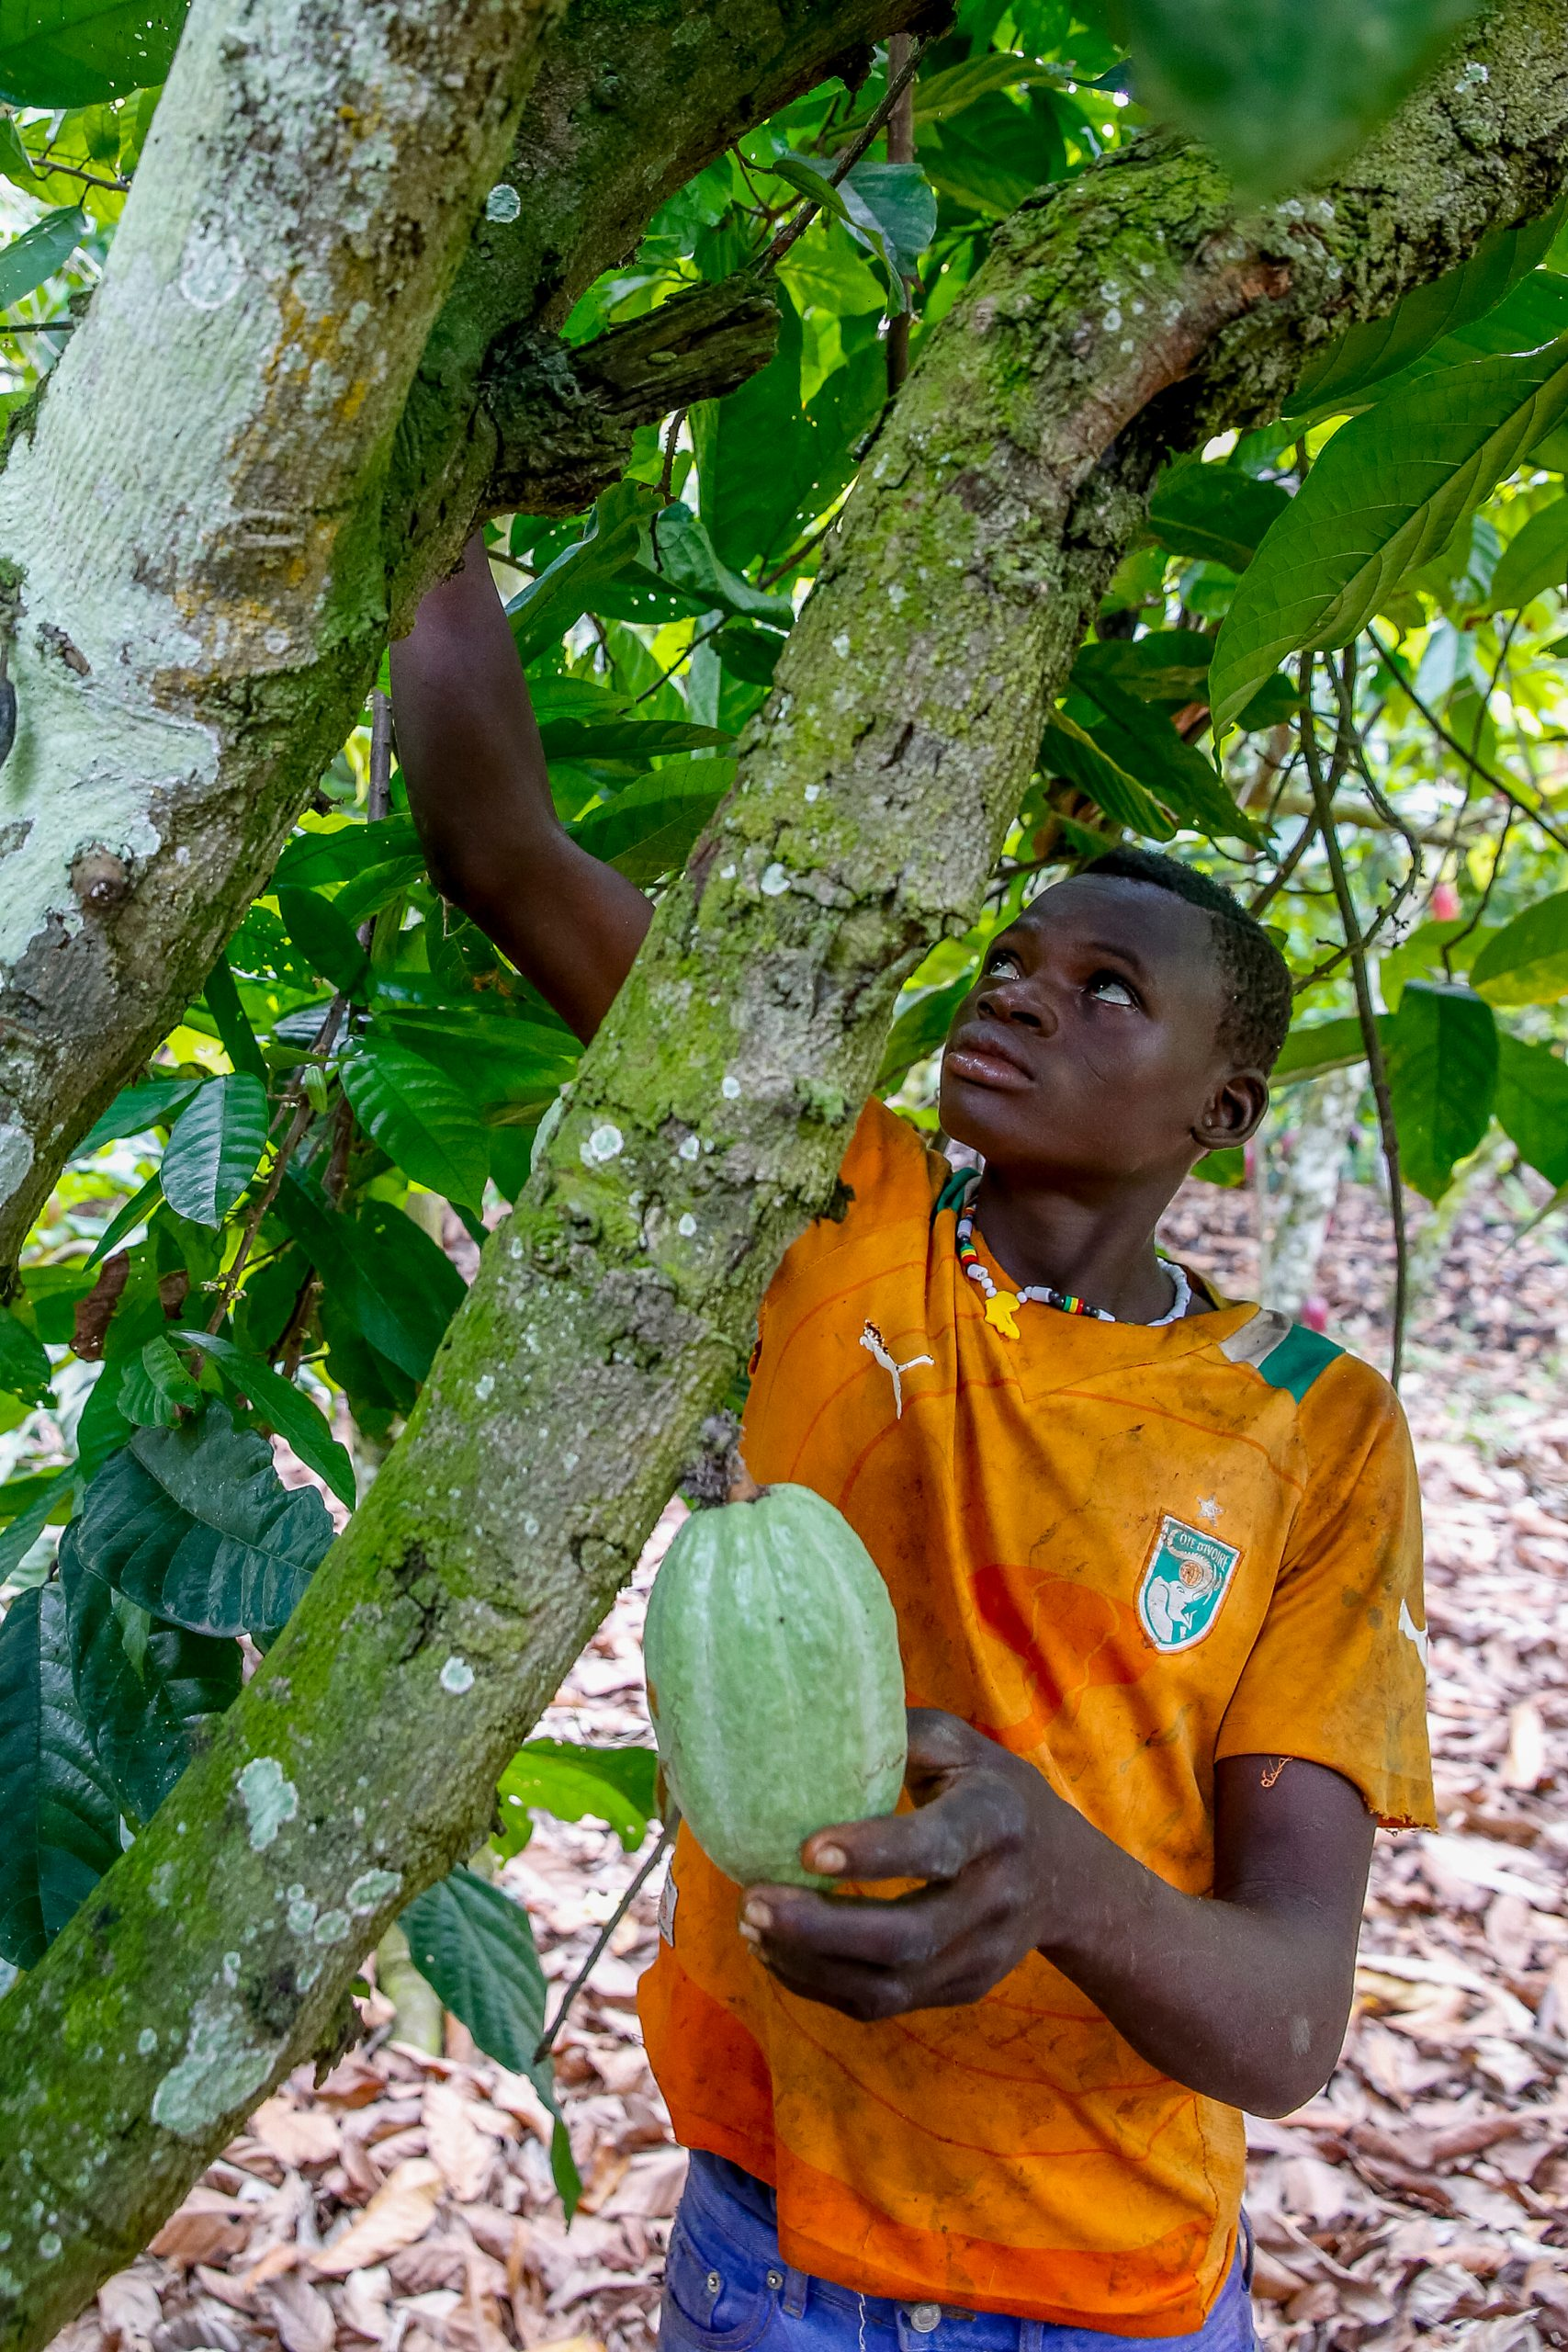 Young cocoa plantation worker in Guezon, Ivory Coast, harvesting crops.